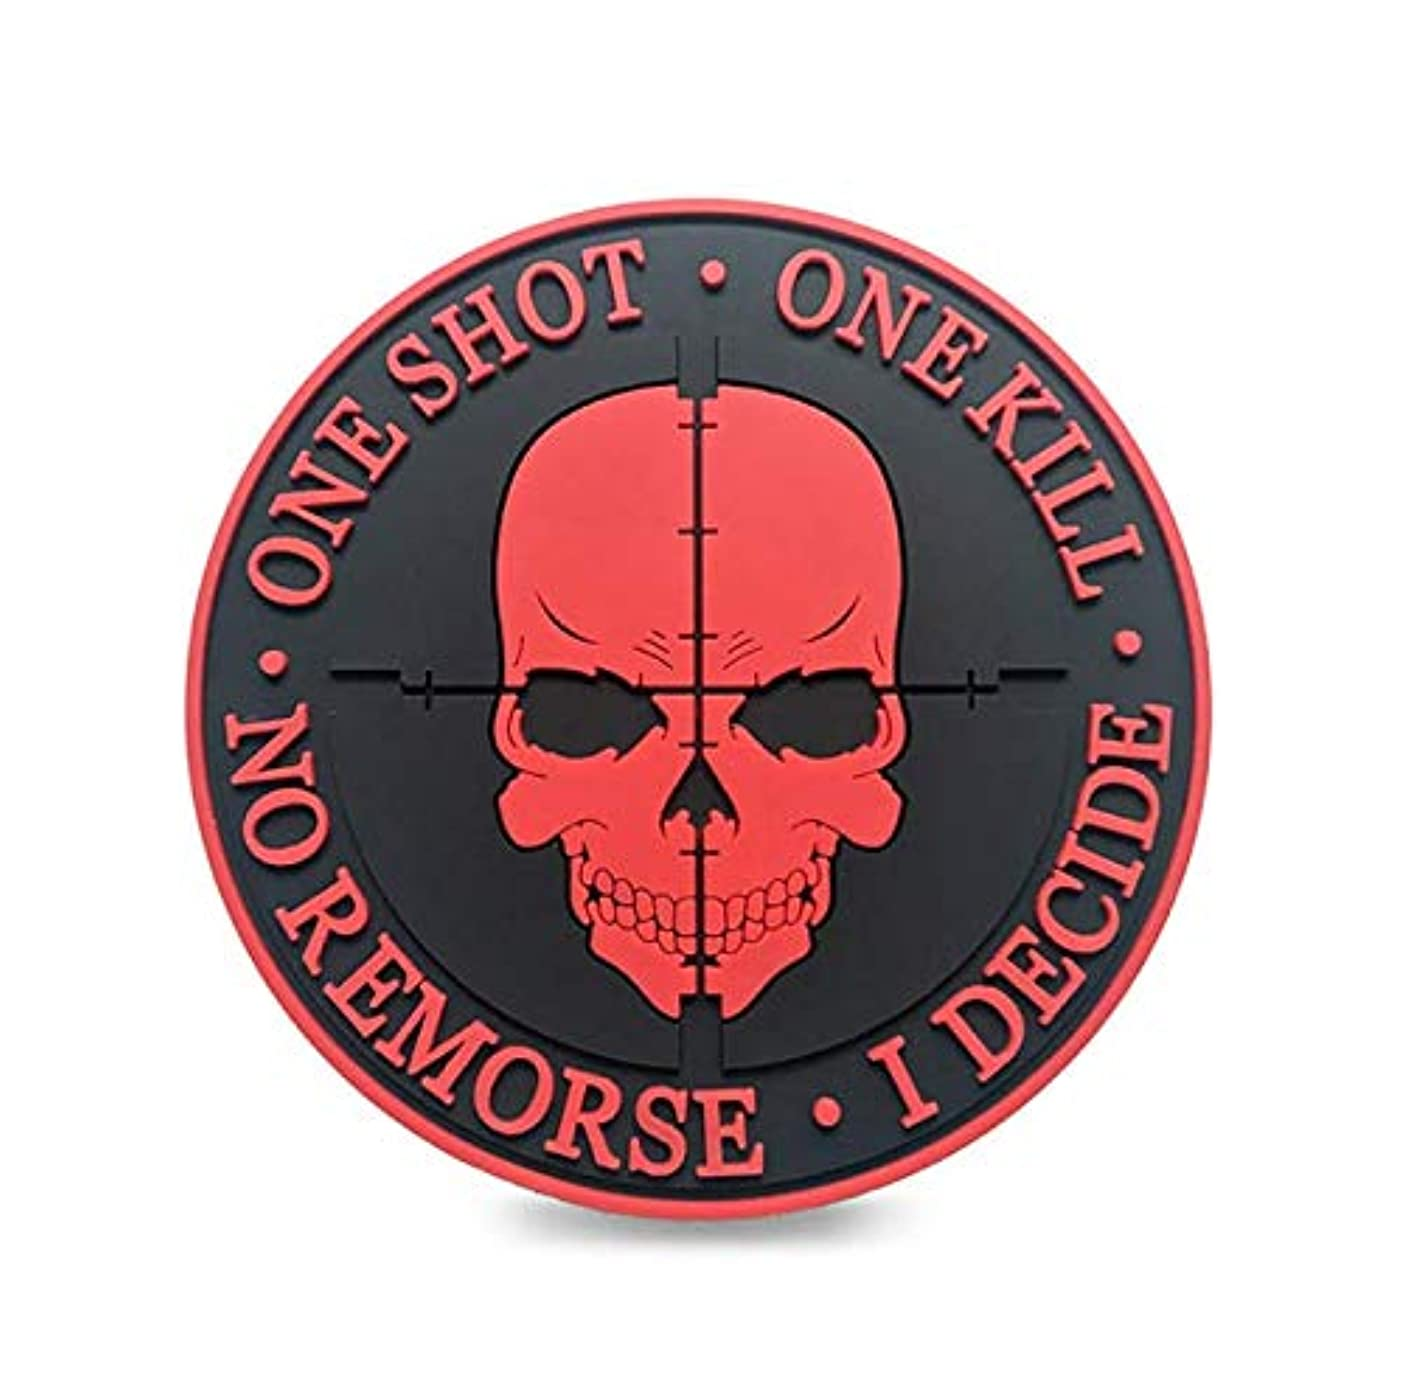 Morton Home Tactical PVC 3D Black Sniper One Shot One Kill No Remorse I Decide Morale Badge Patch (red)